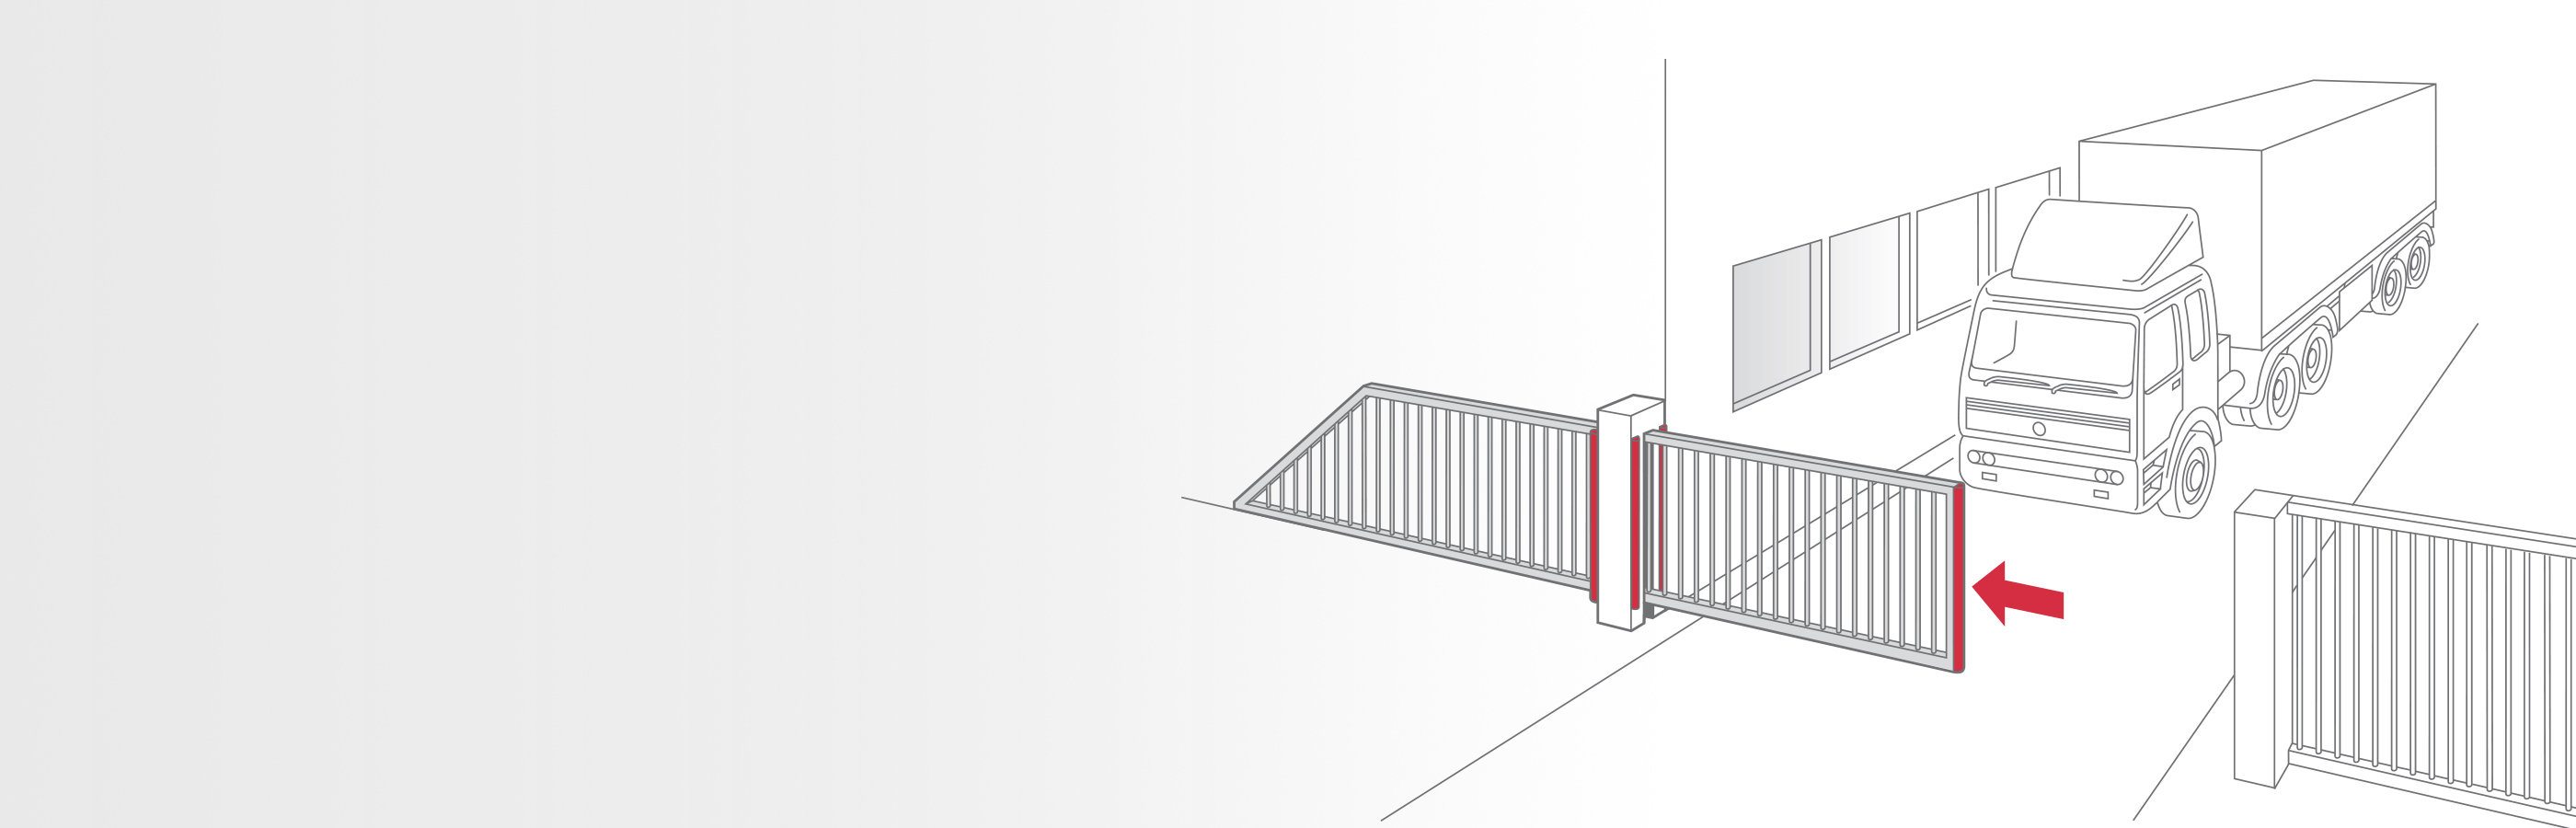 Line drawing of access gate with a passing lorry